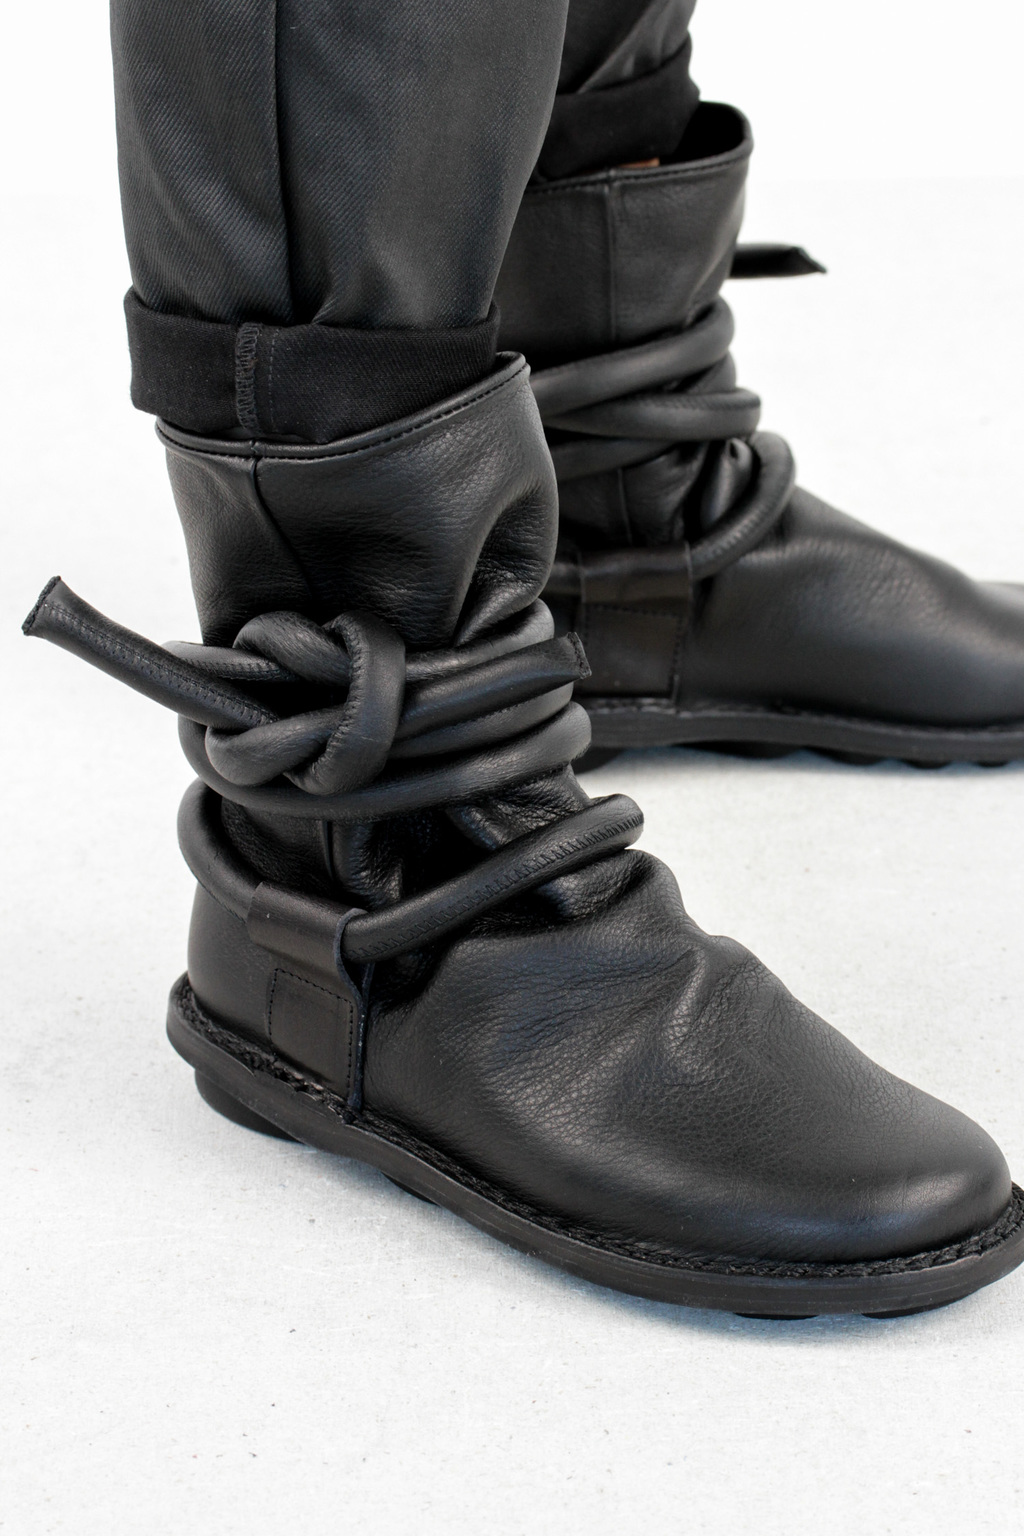 Trippen cable f black waw leather boots4